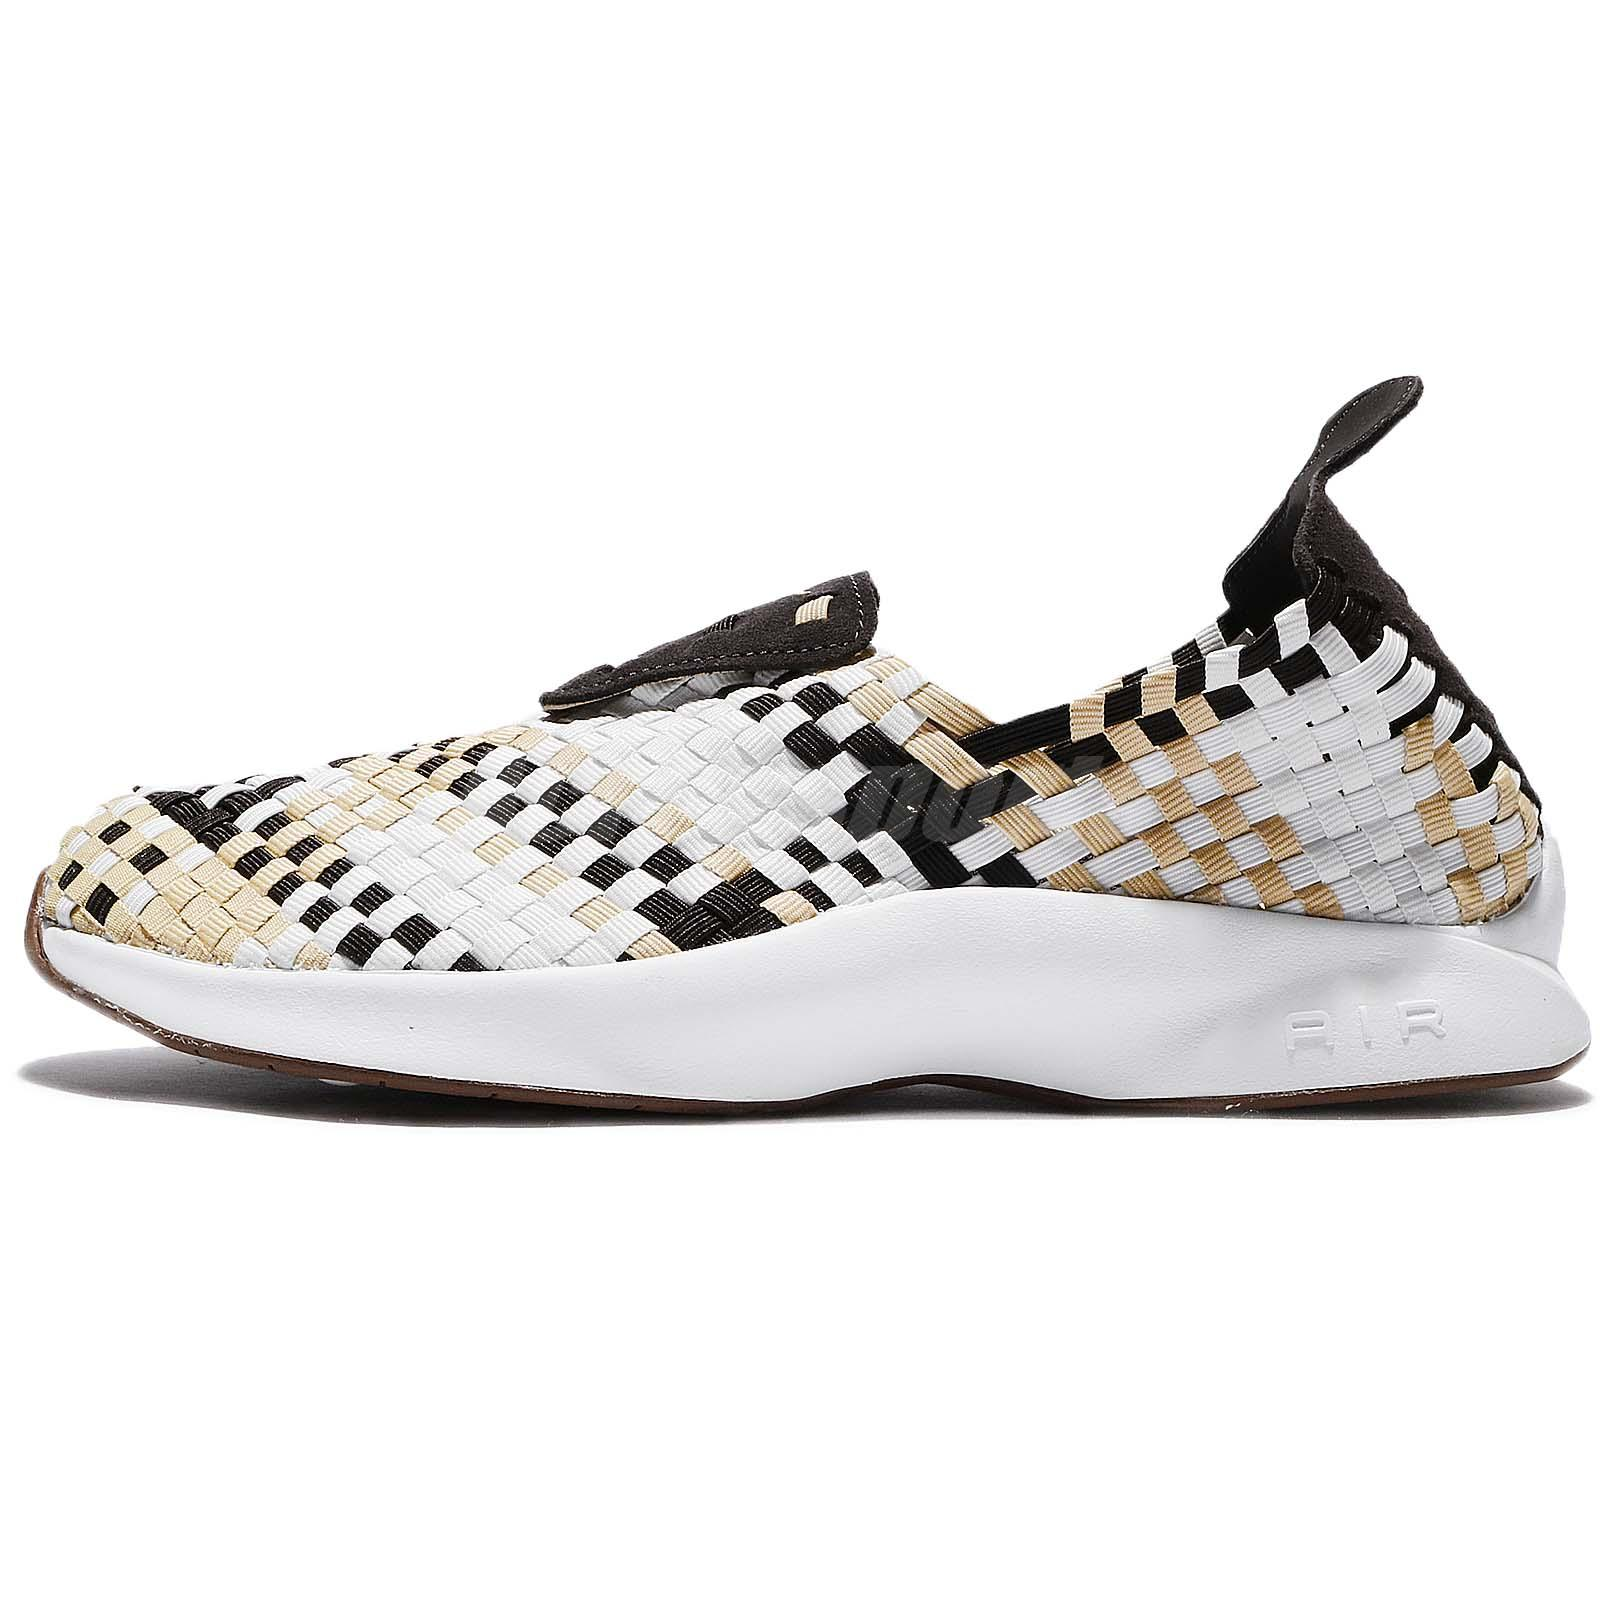 0d5eeb723c7c Nike Air Woven Velvet Brown Sail Men Classic Shoes Sneakers Slip-On  312422-200